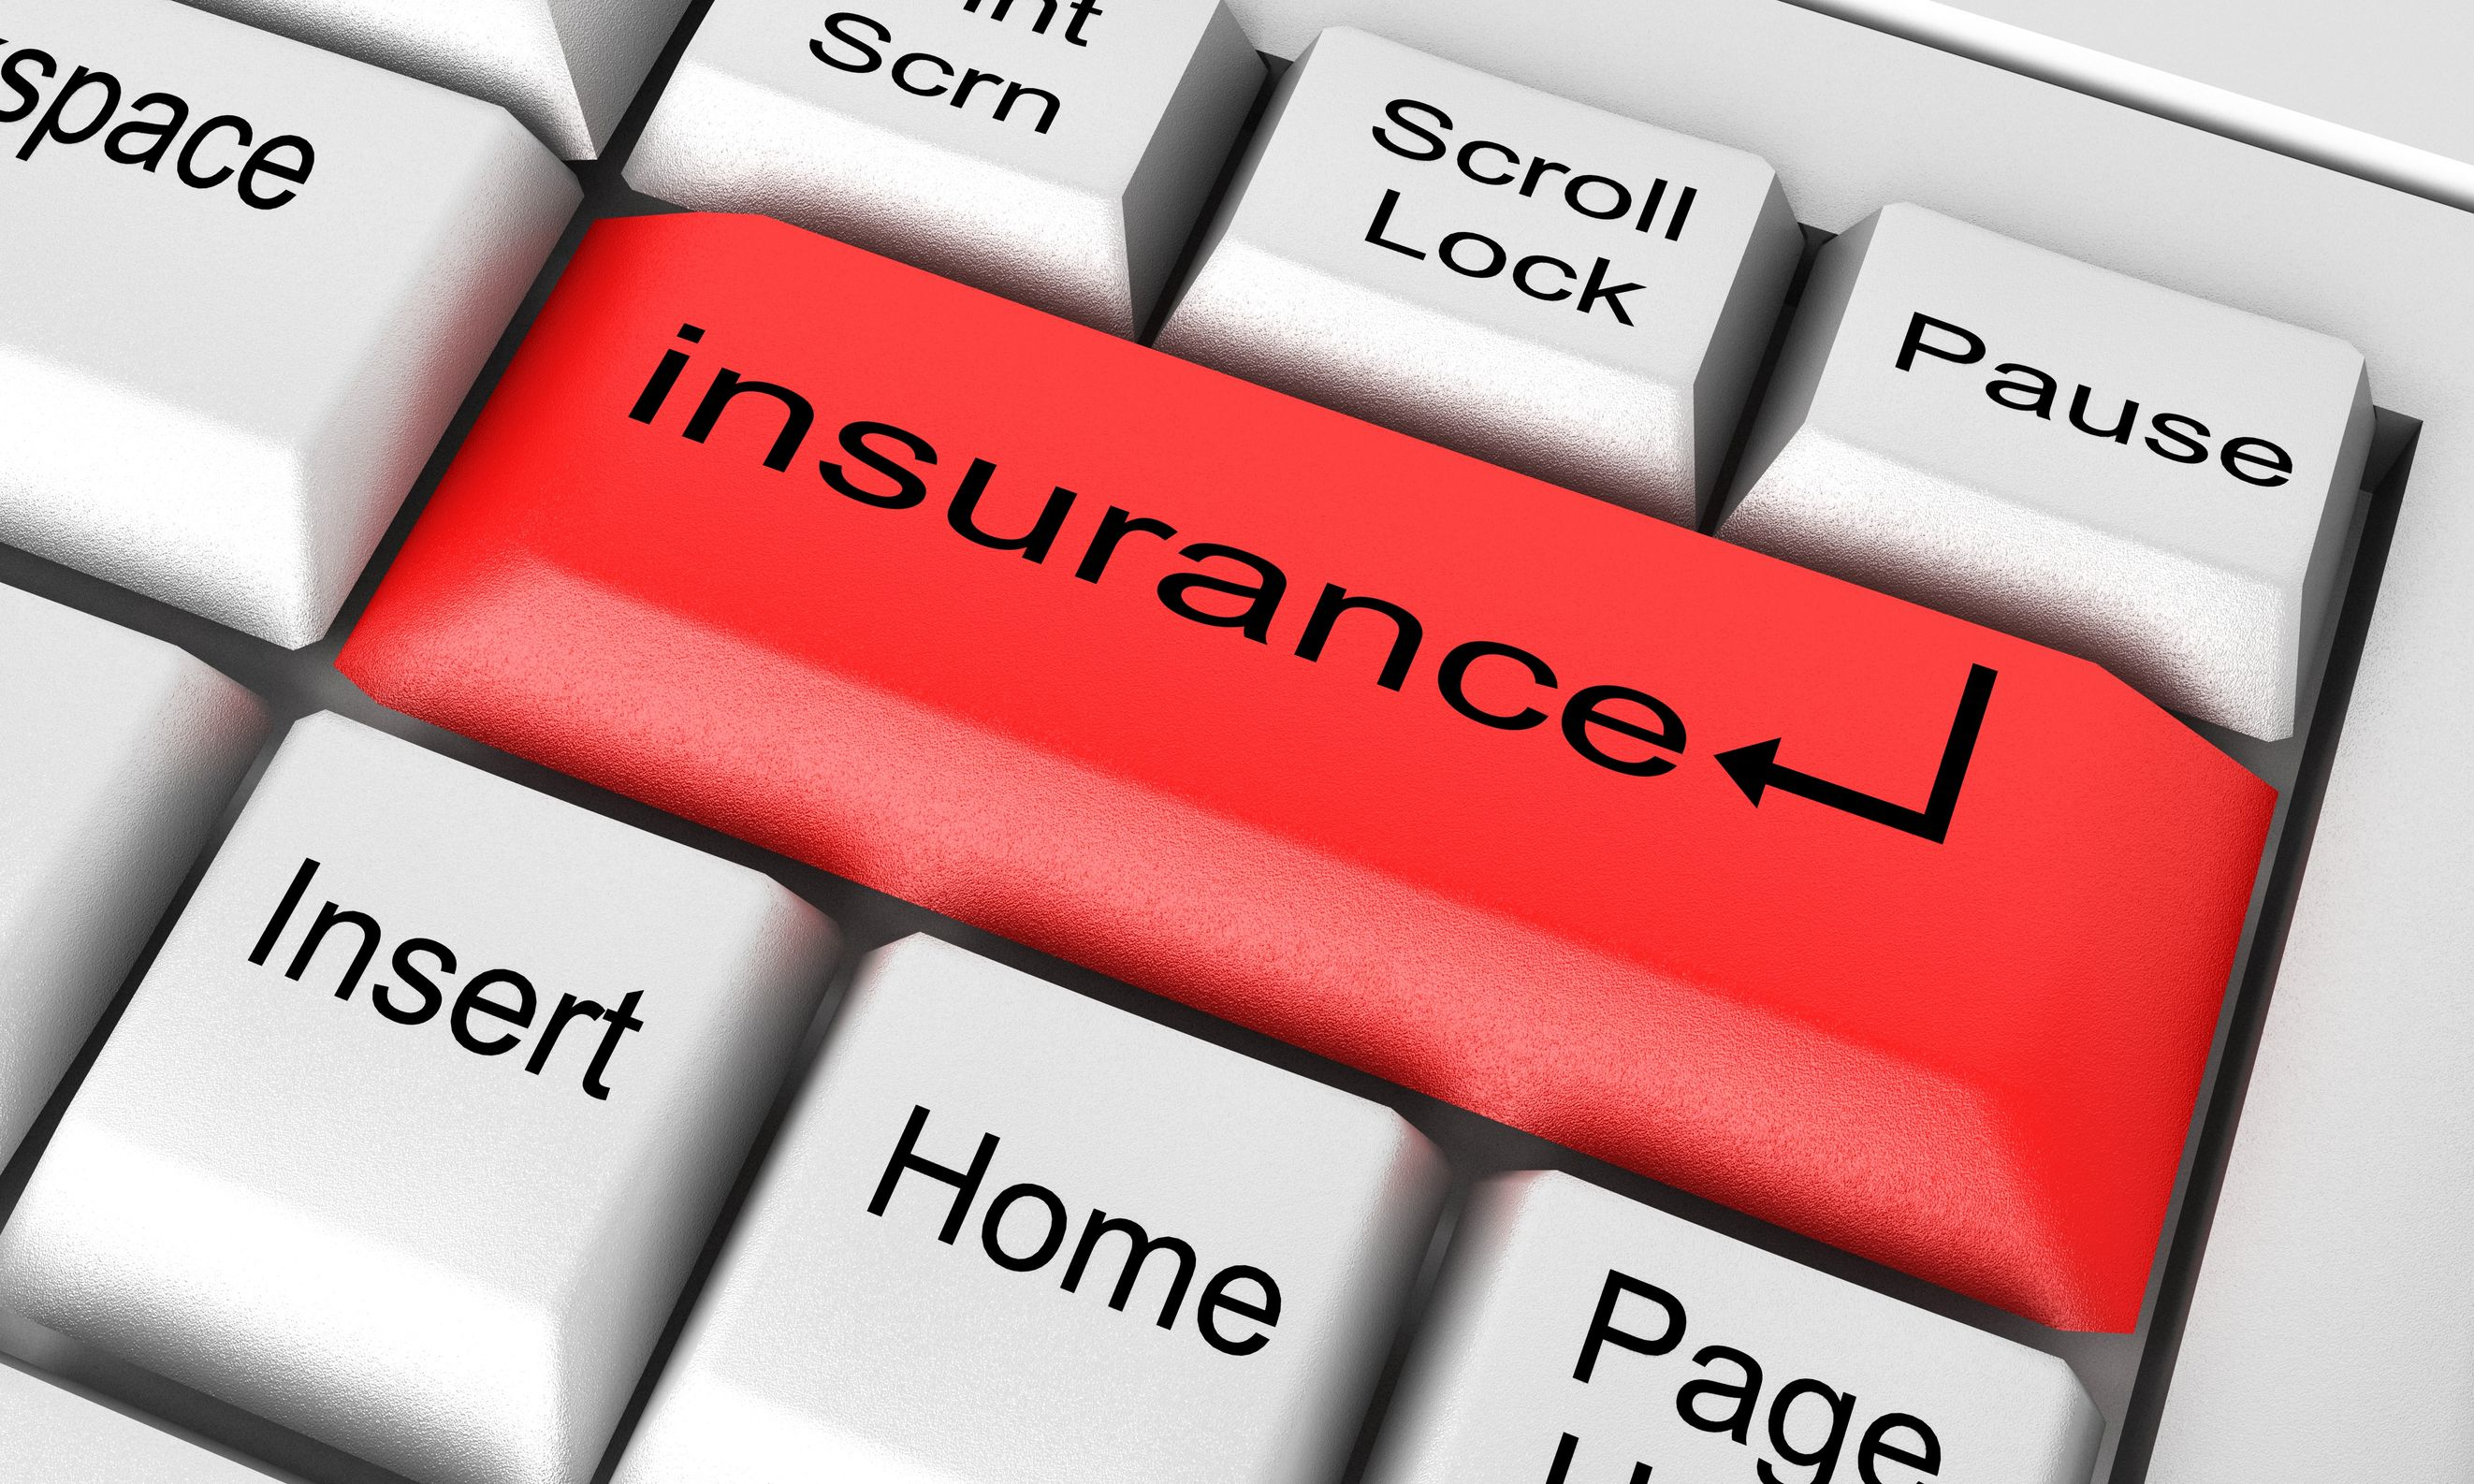 What the Heck is Mortgage Safety Insurance coverage and Why Do I Want It?